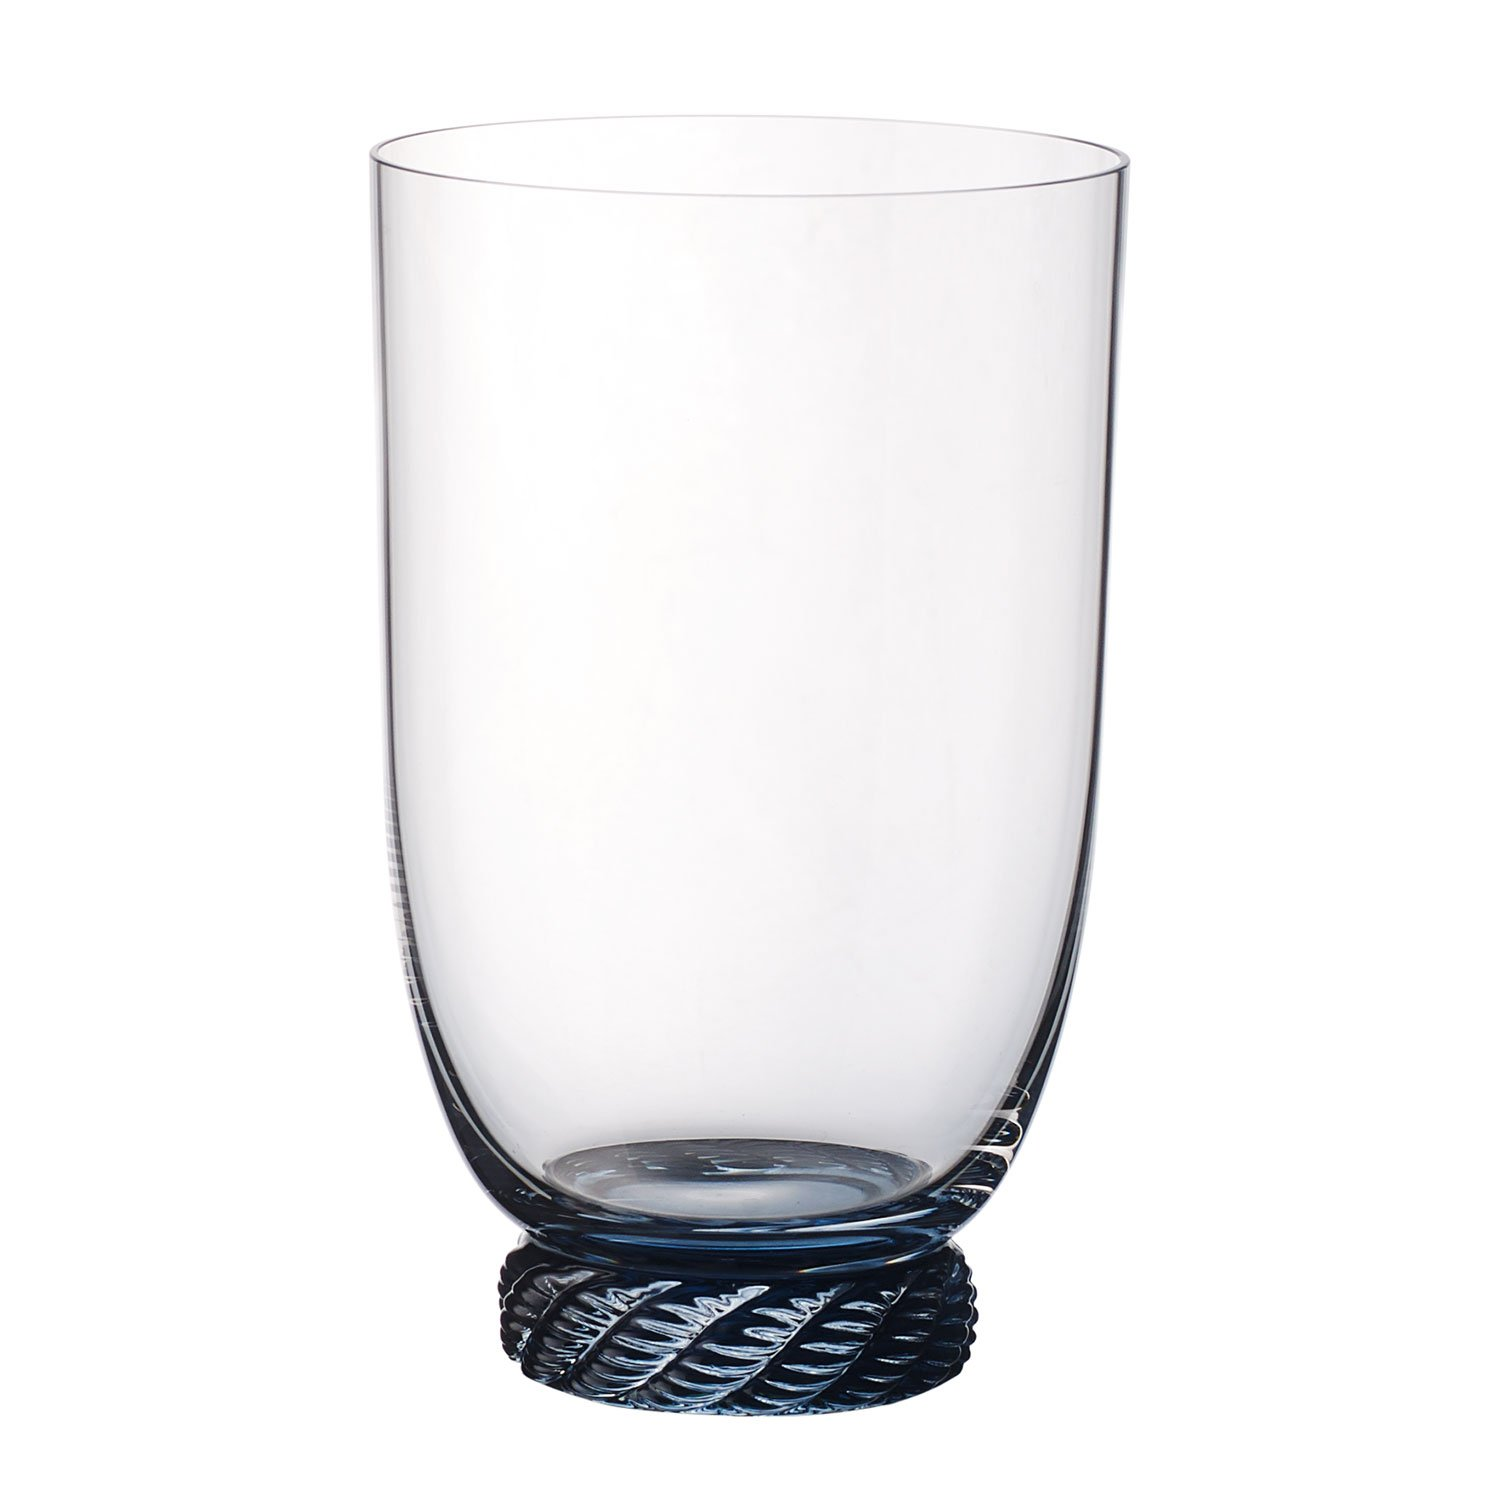 Villeroy & Boch Montauk Aqua Tumbler, 560 ml, Crystal Glass, Transparent/Blue